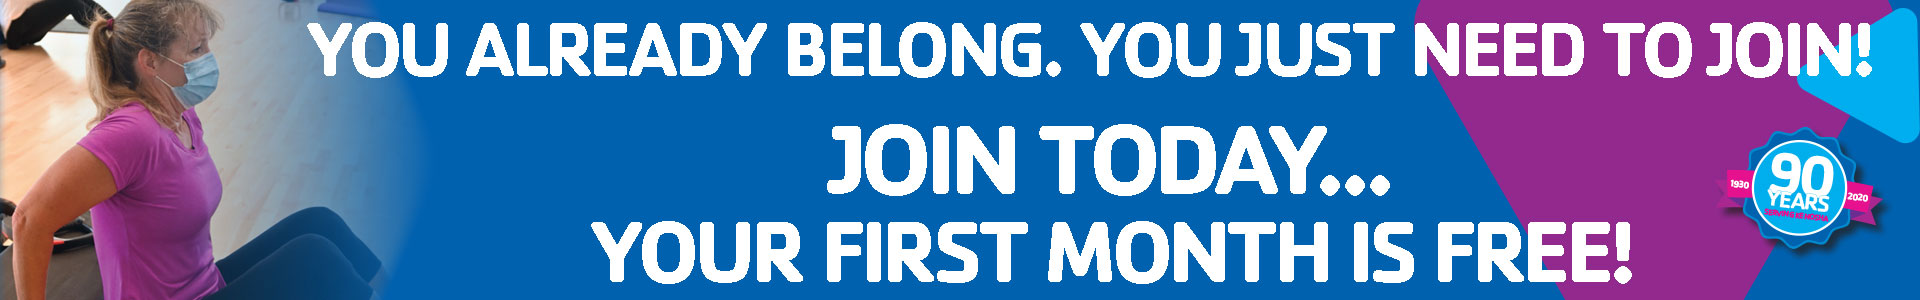 You are already a member, you just need to join! Join today and your first month is FREE!